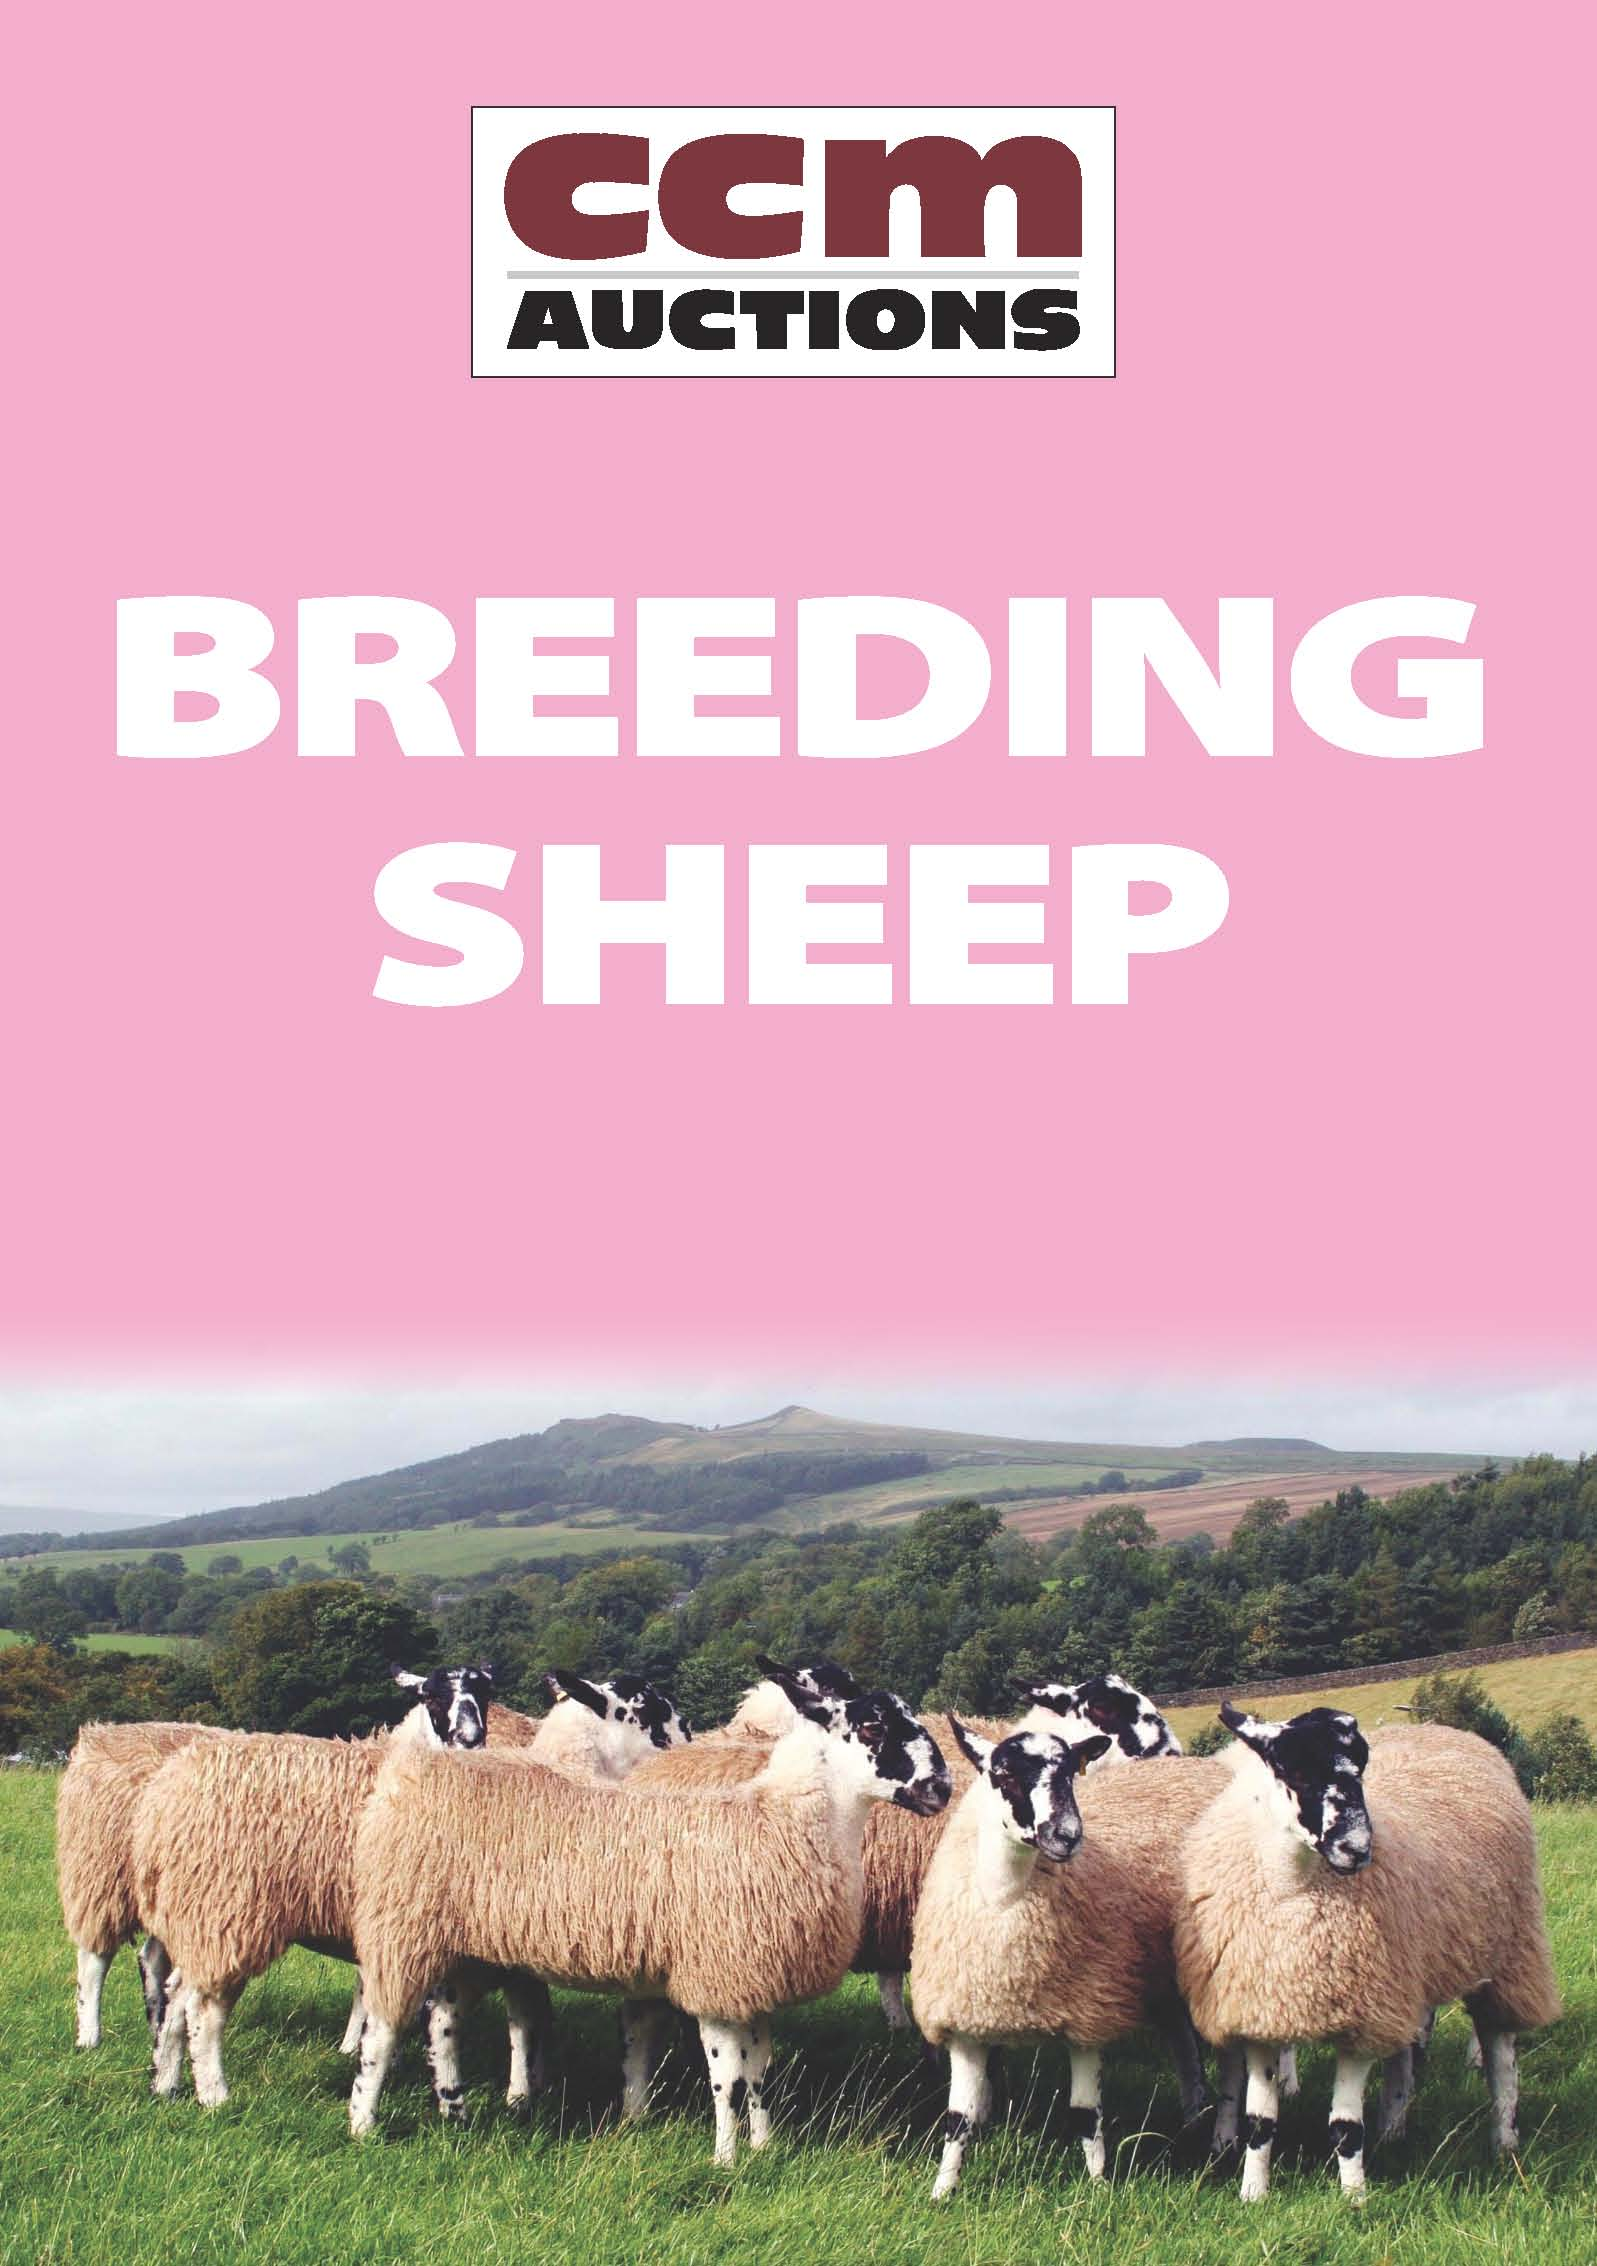 BREEDING SHEEP - TUESDAY 20TH OCTOBER